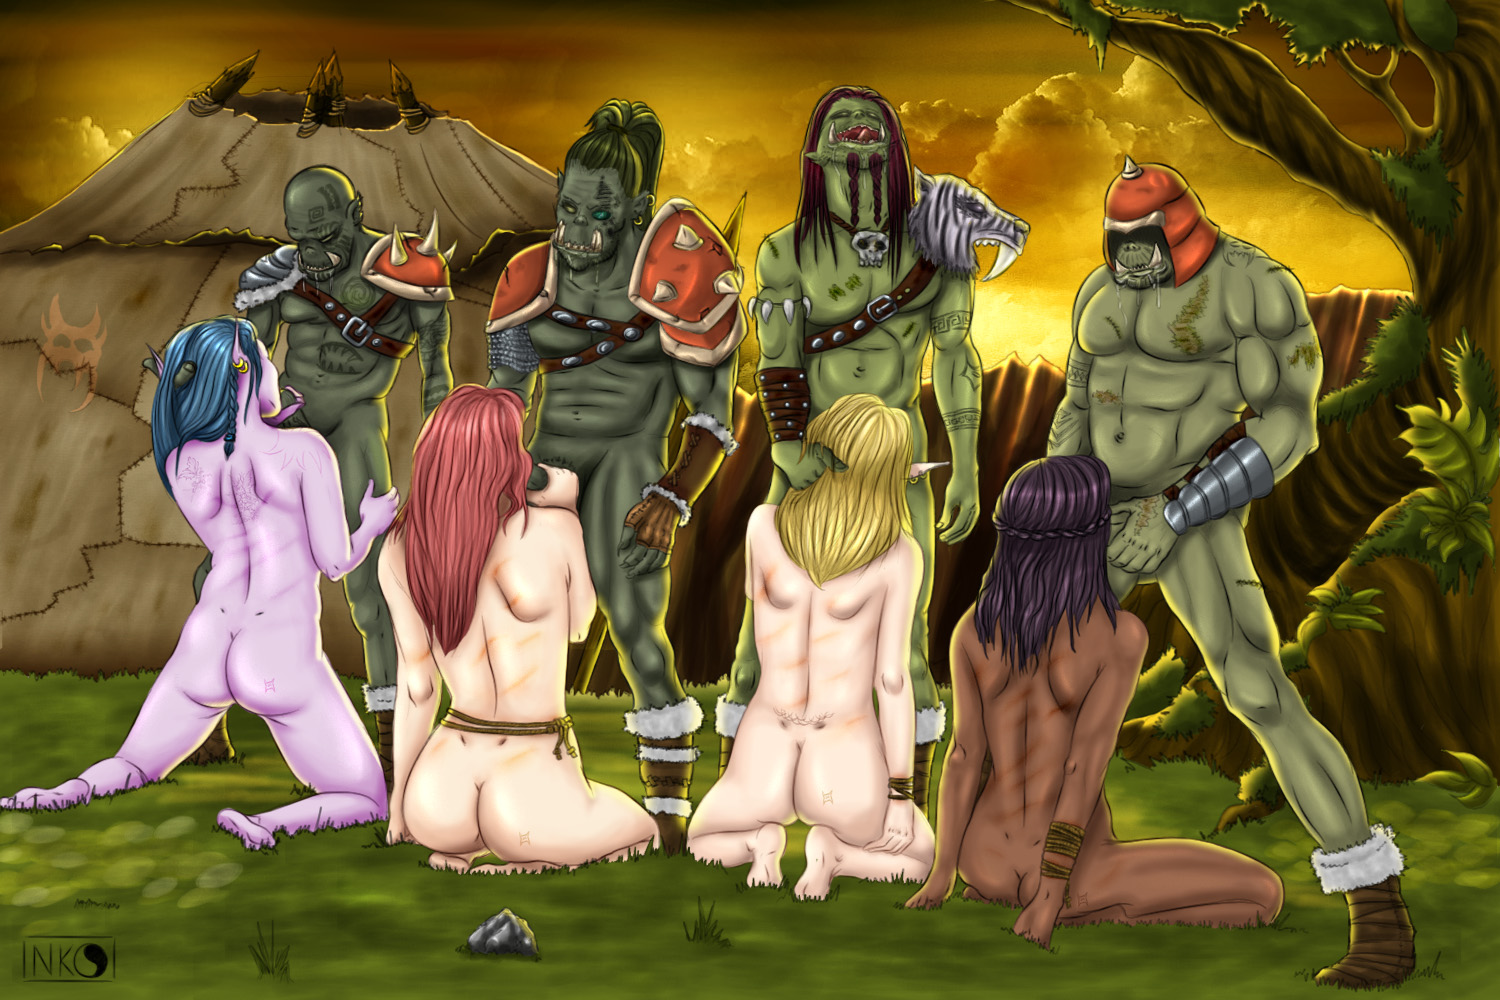 Human and elf world of warcraft porn sexy pic